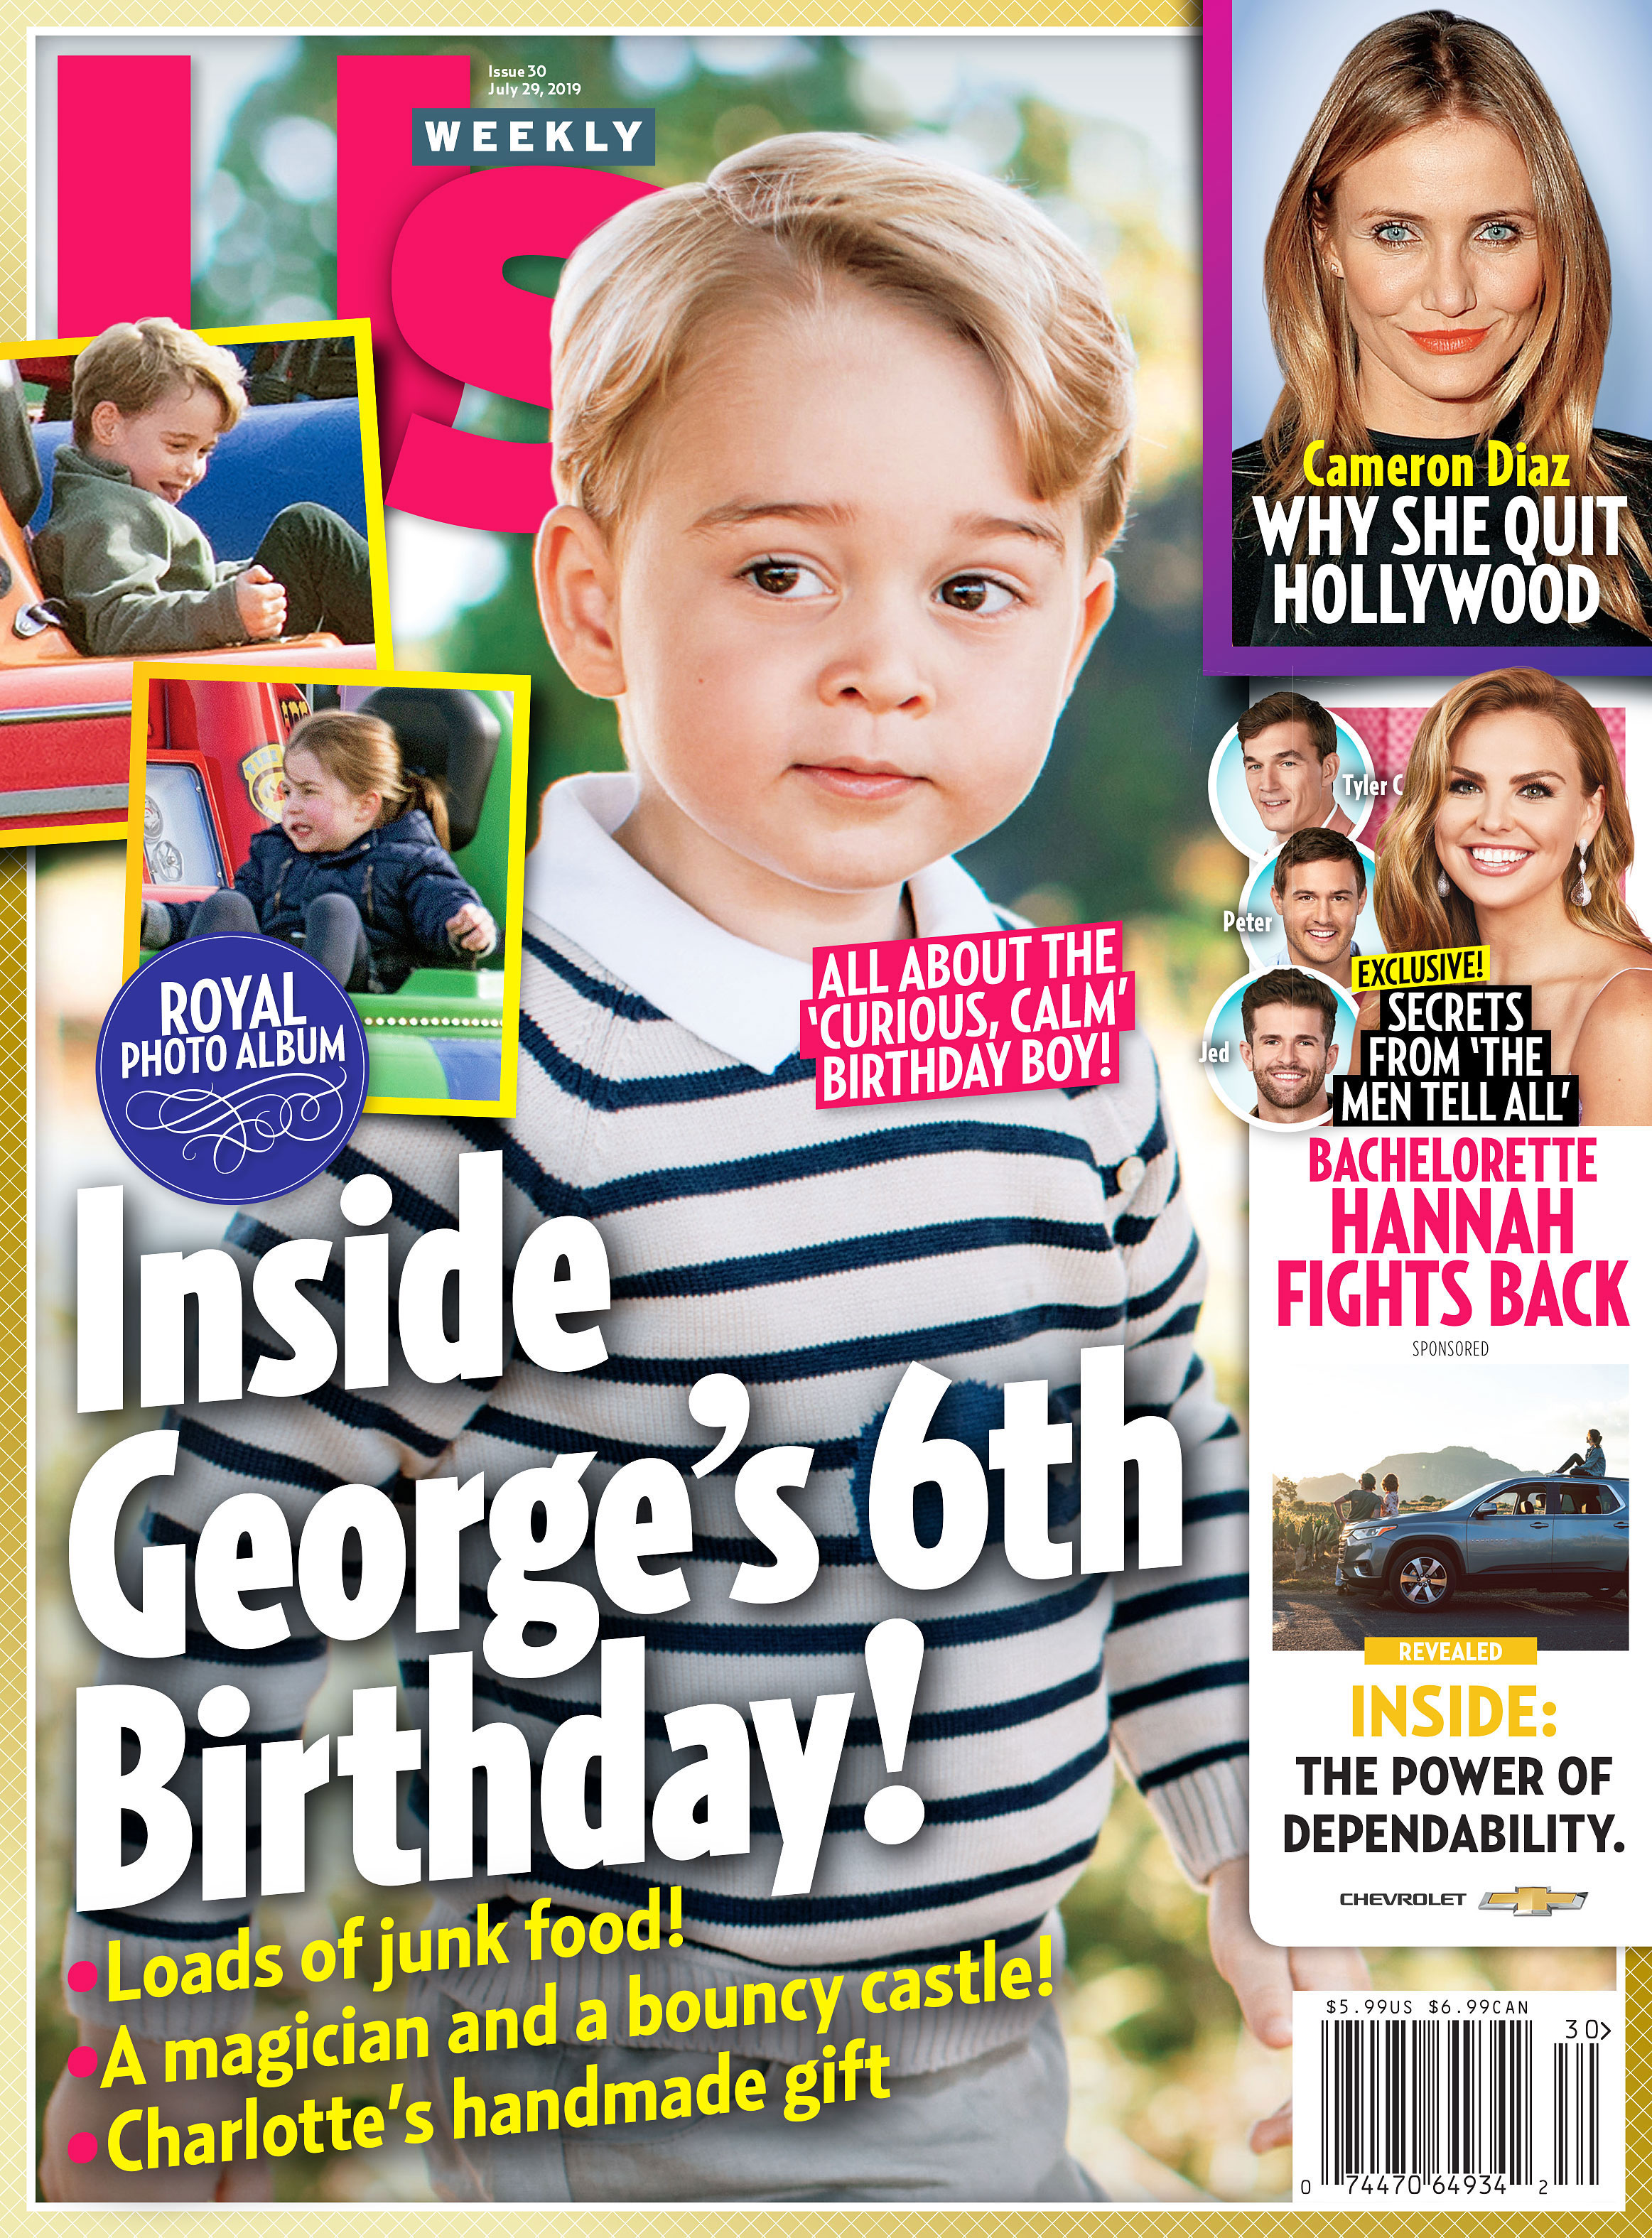 Us Weekly 3019 Prince George Birthday Annette Roque and Matt Lauer Divorce Settlement